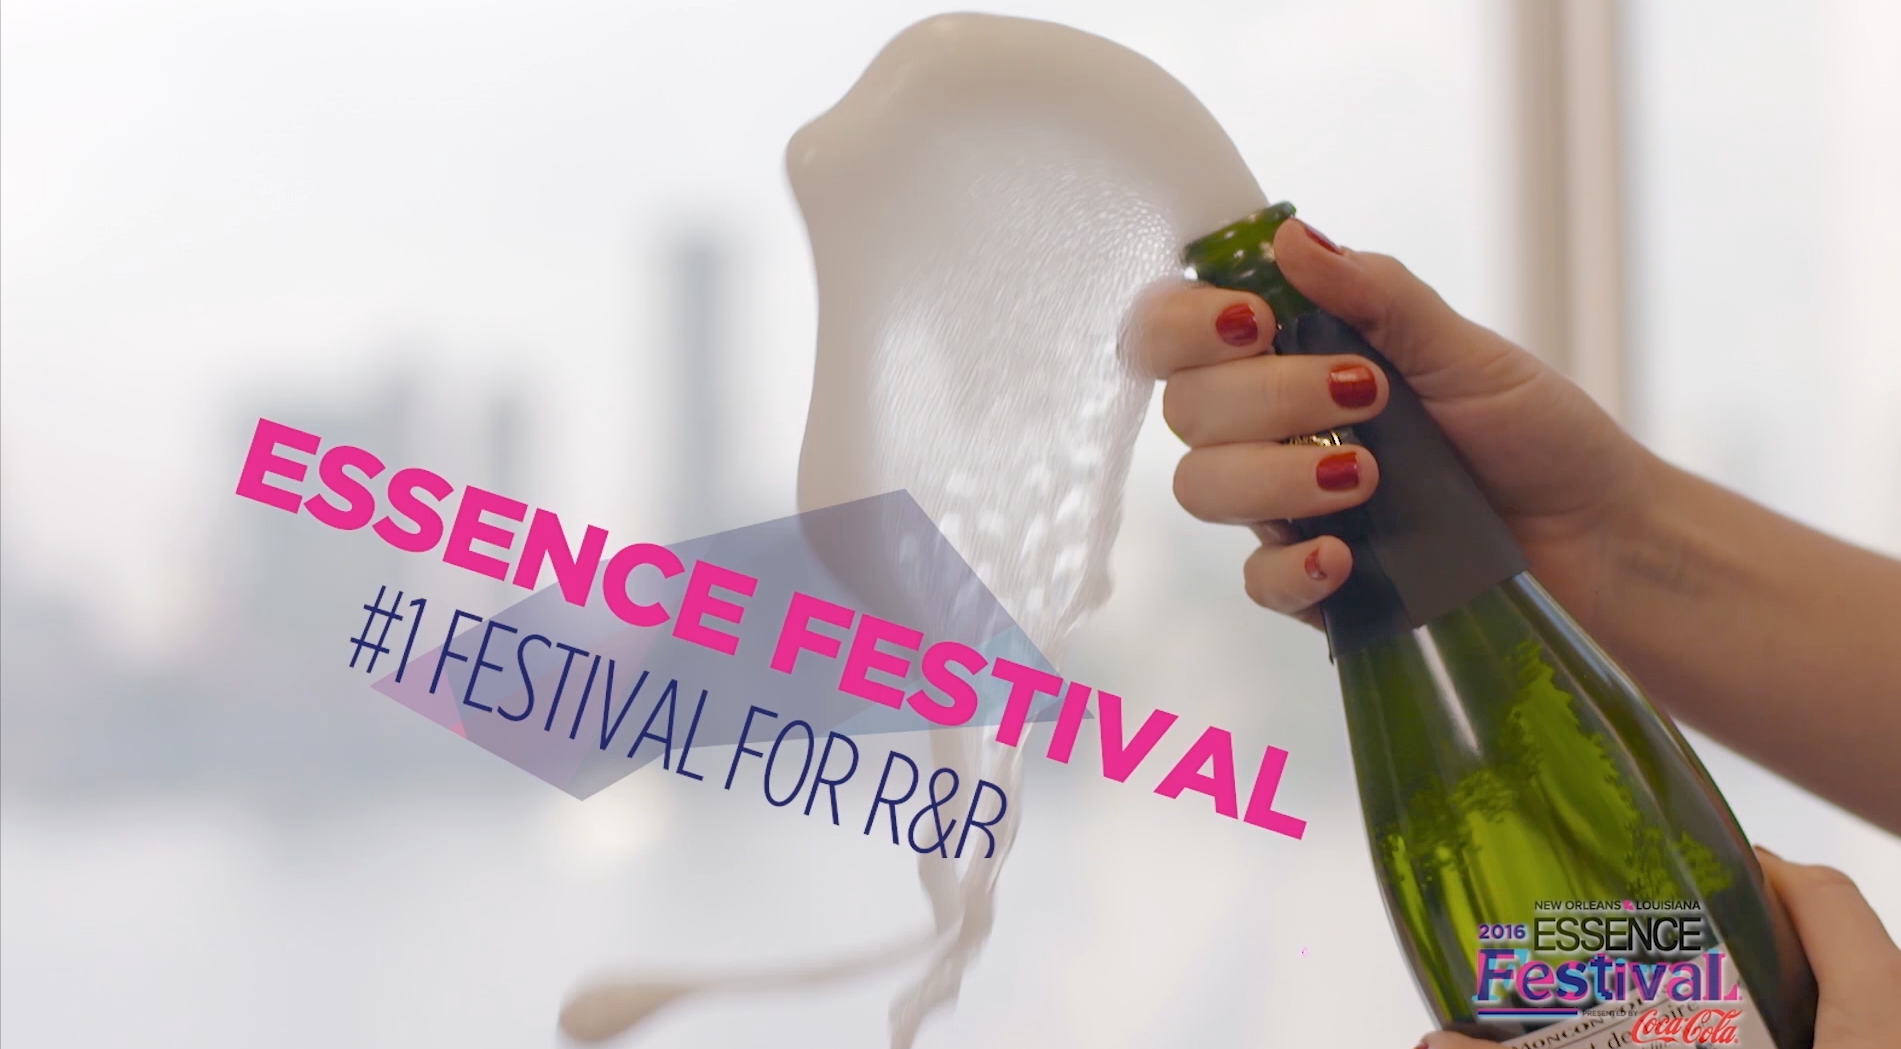 ESSENCE Fest Launches 'No. 1 Festival for R&B' Video Series